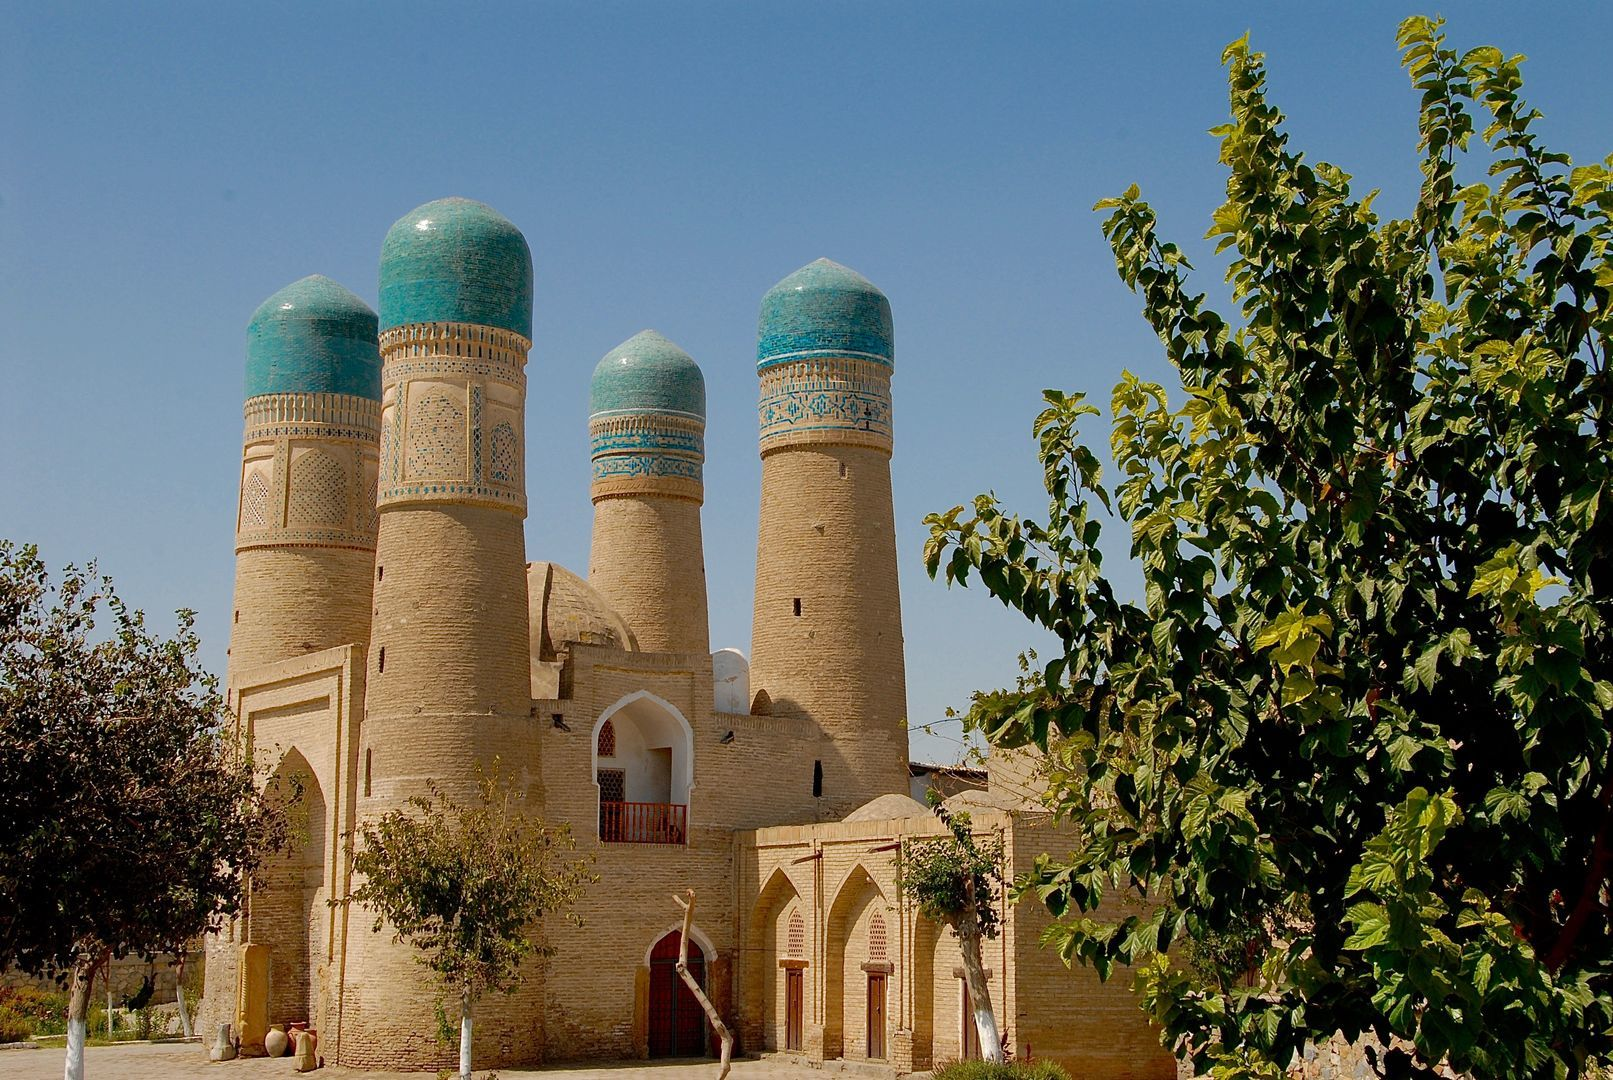 Bukhara Chor Minor- 4 minarets as featured in Lonely Planet and Classic Uzbekistan Tours